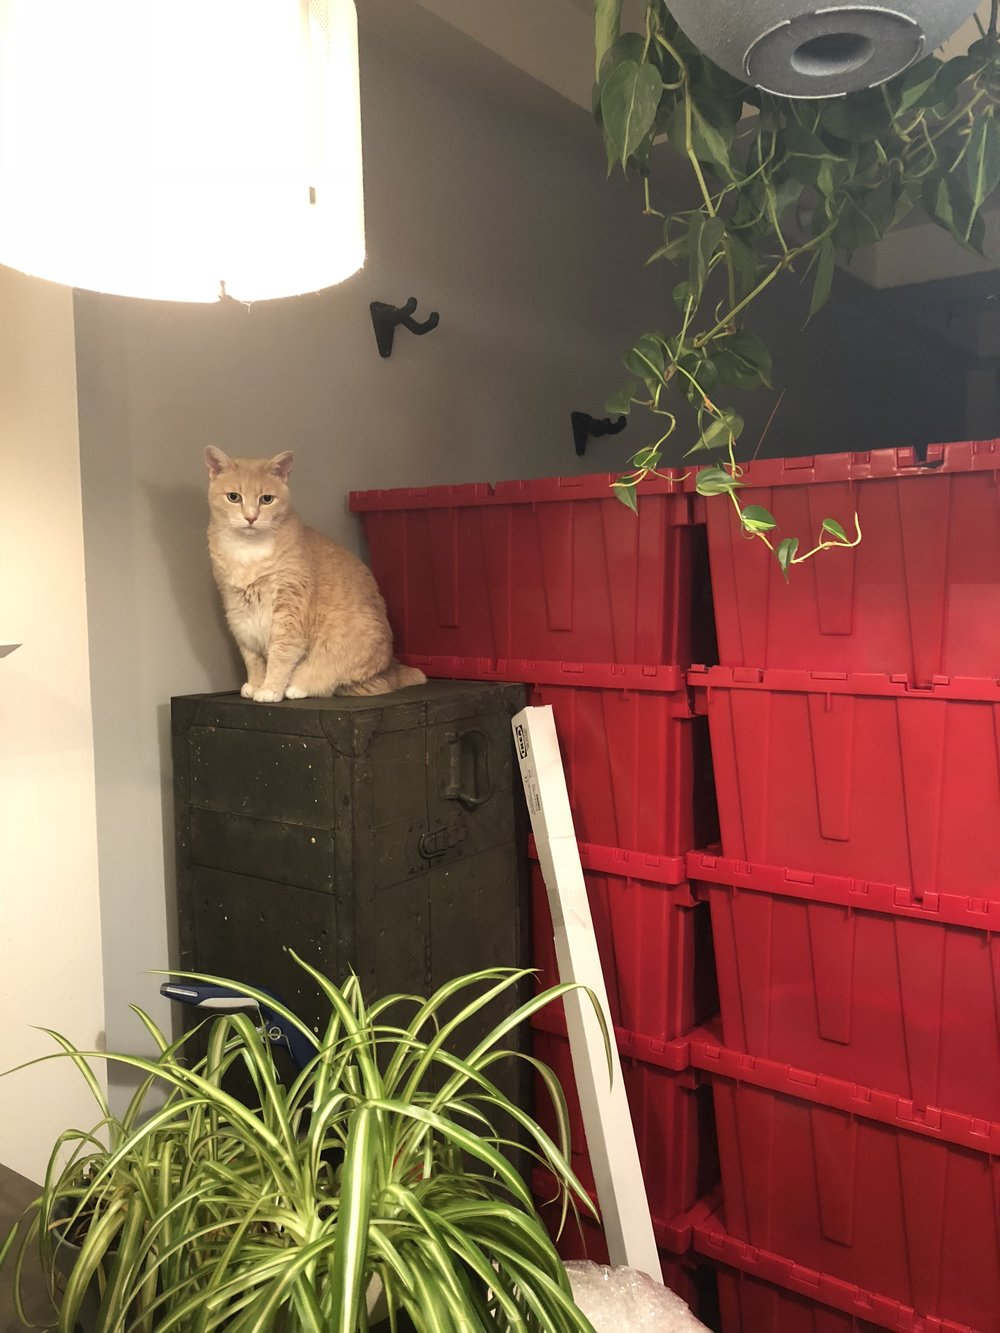 Ozzie is unsure about all of the madness and the bins from Jeff's apartment.